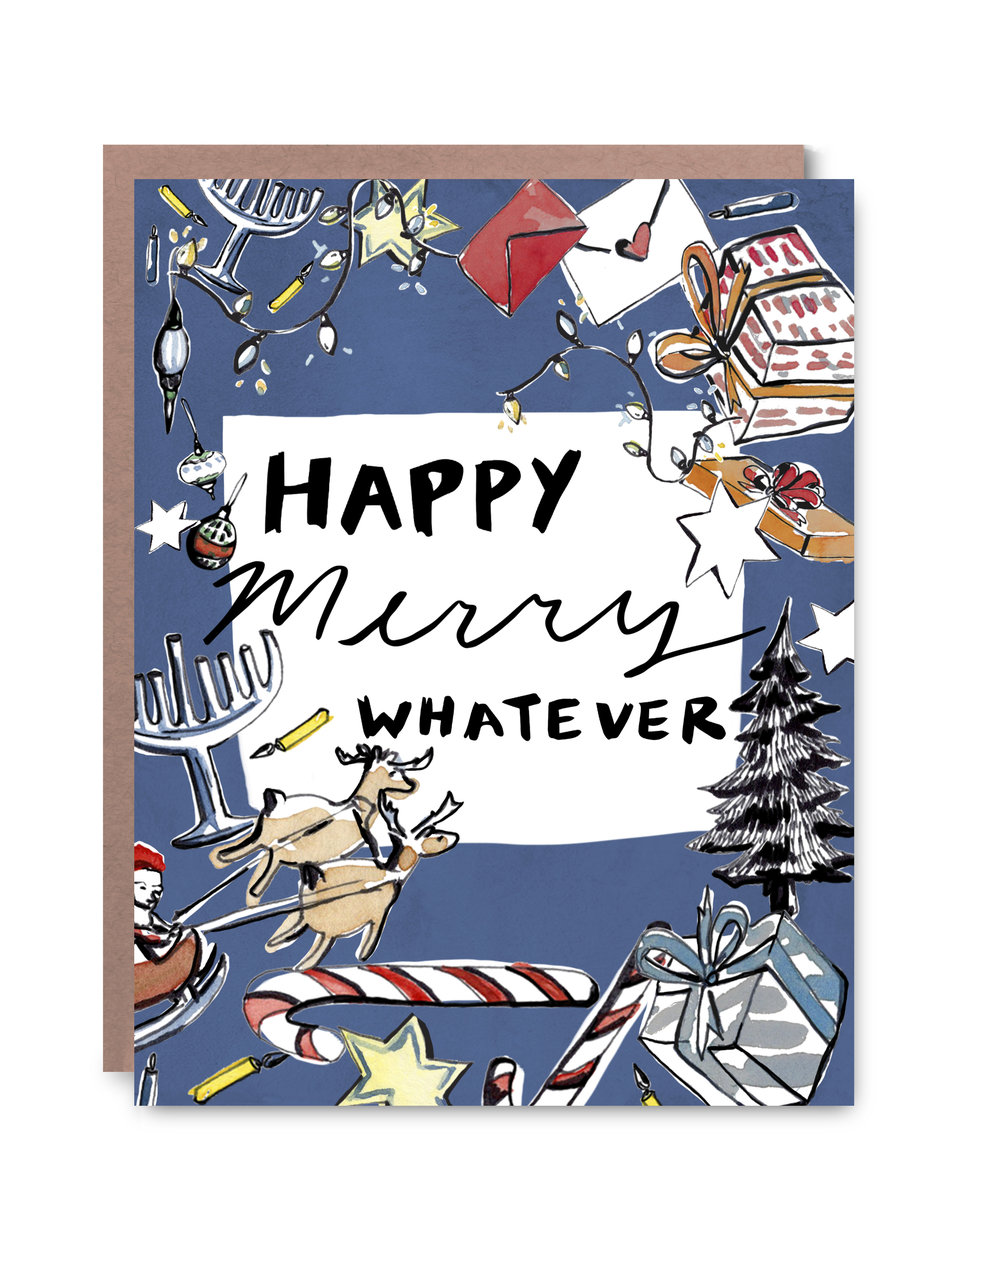 Happy Merry Whatever Card - $5.00